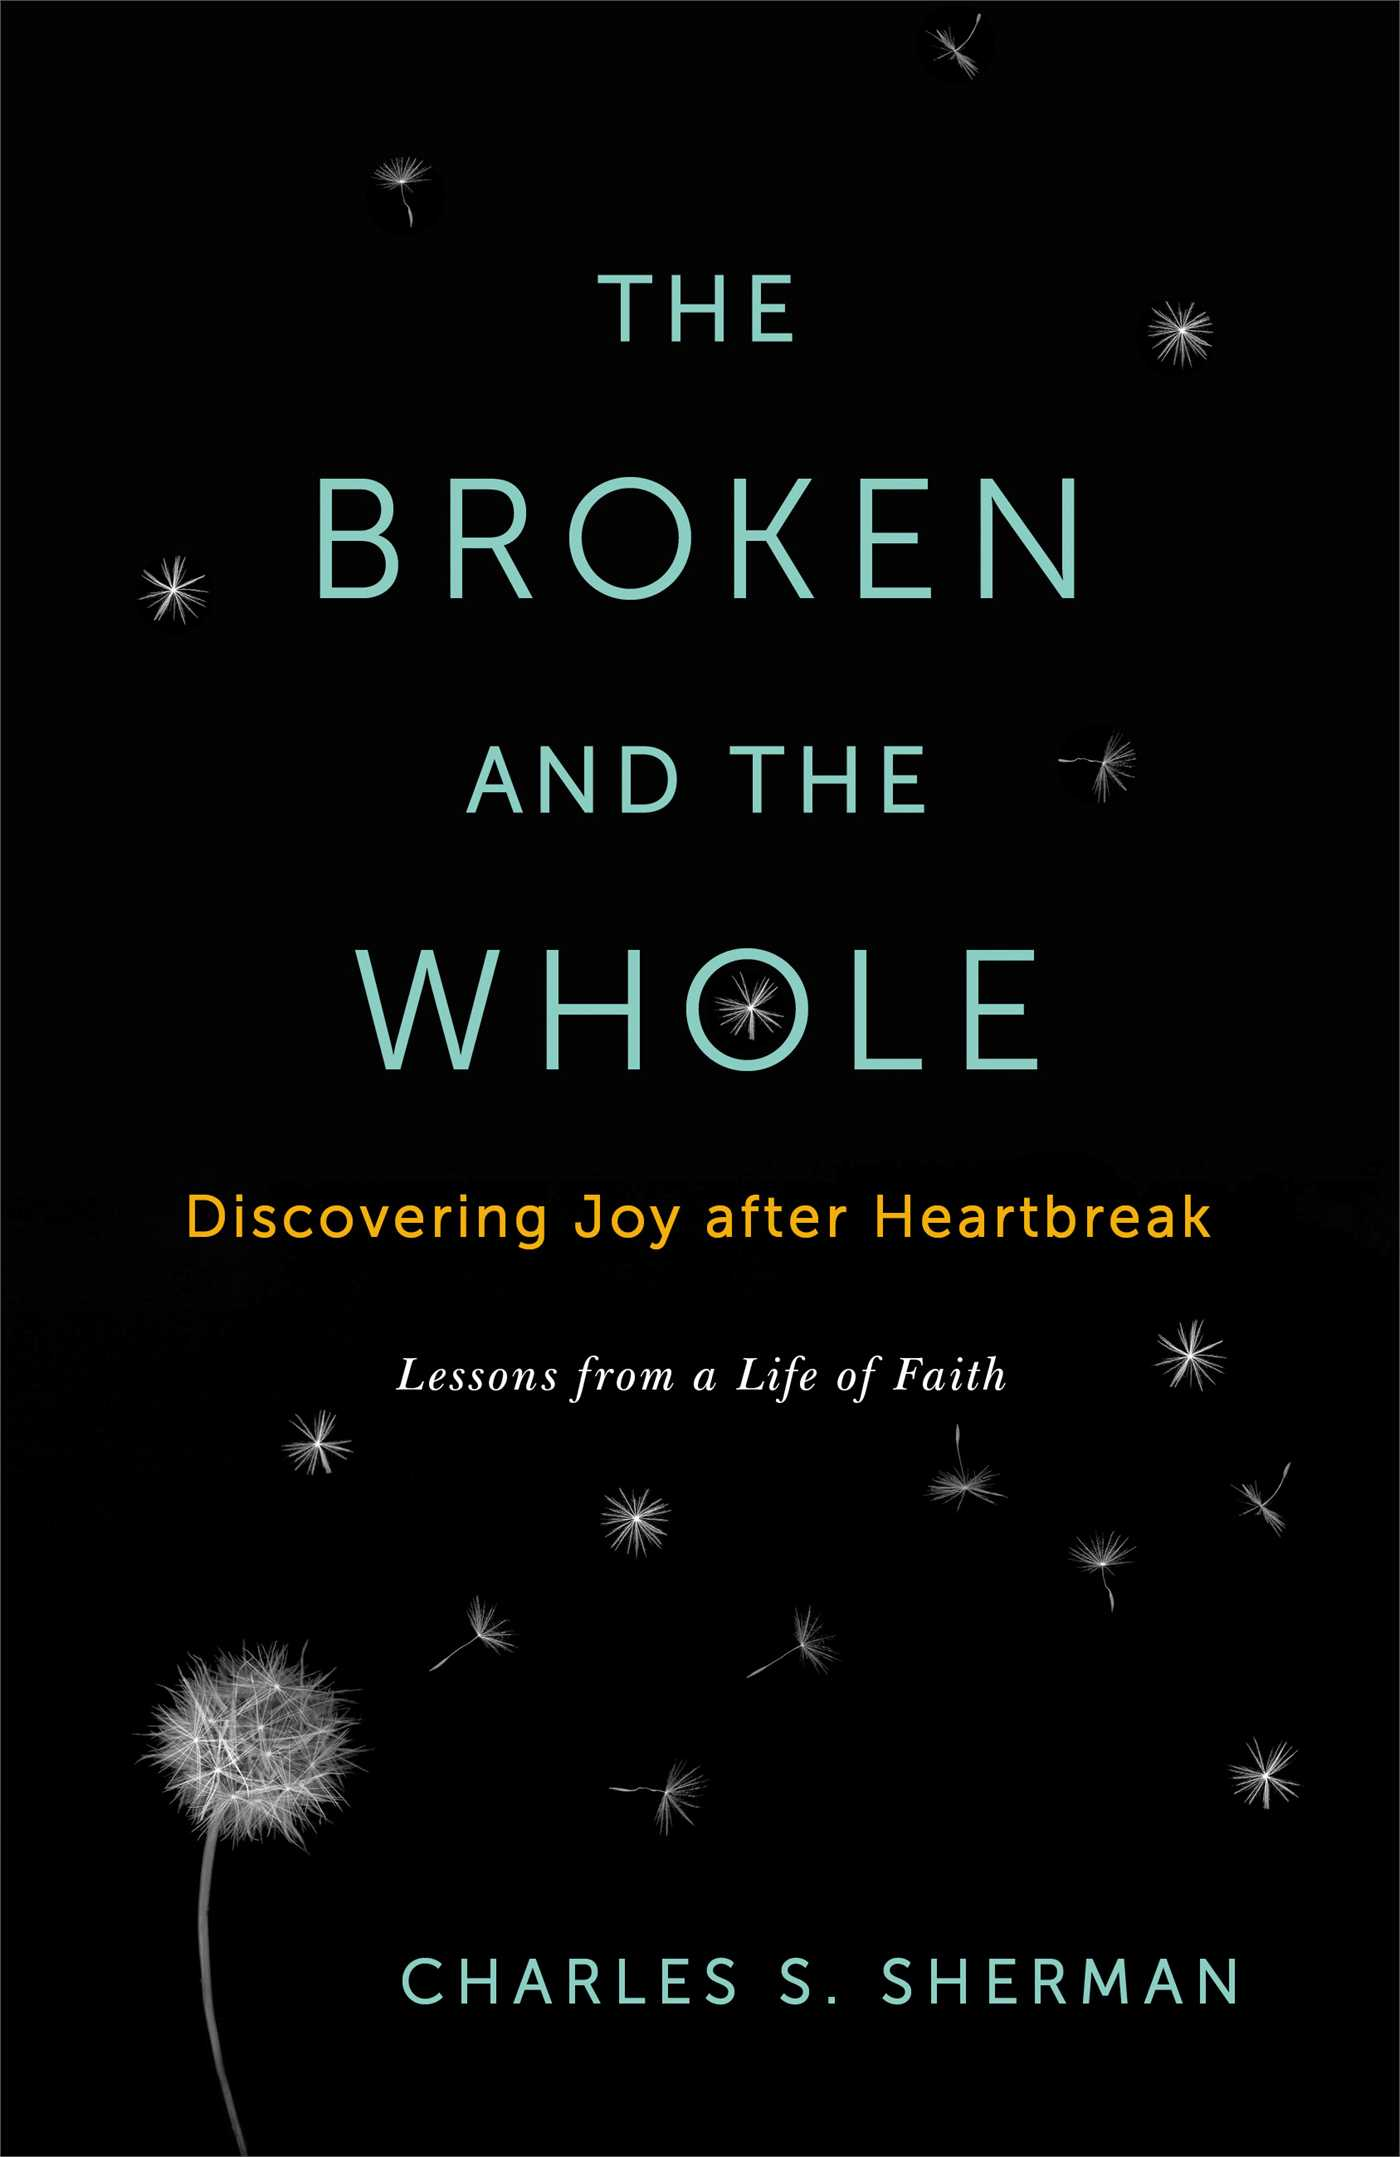 Broken-and-the-whole-9781451656169_hr